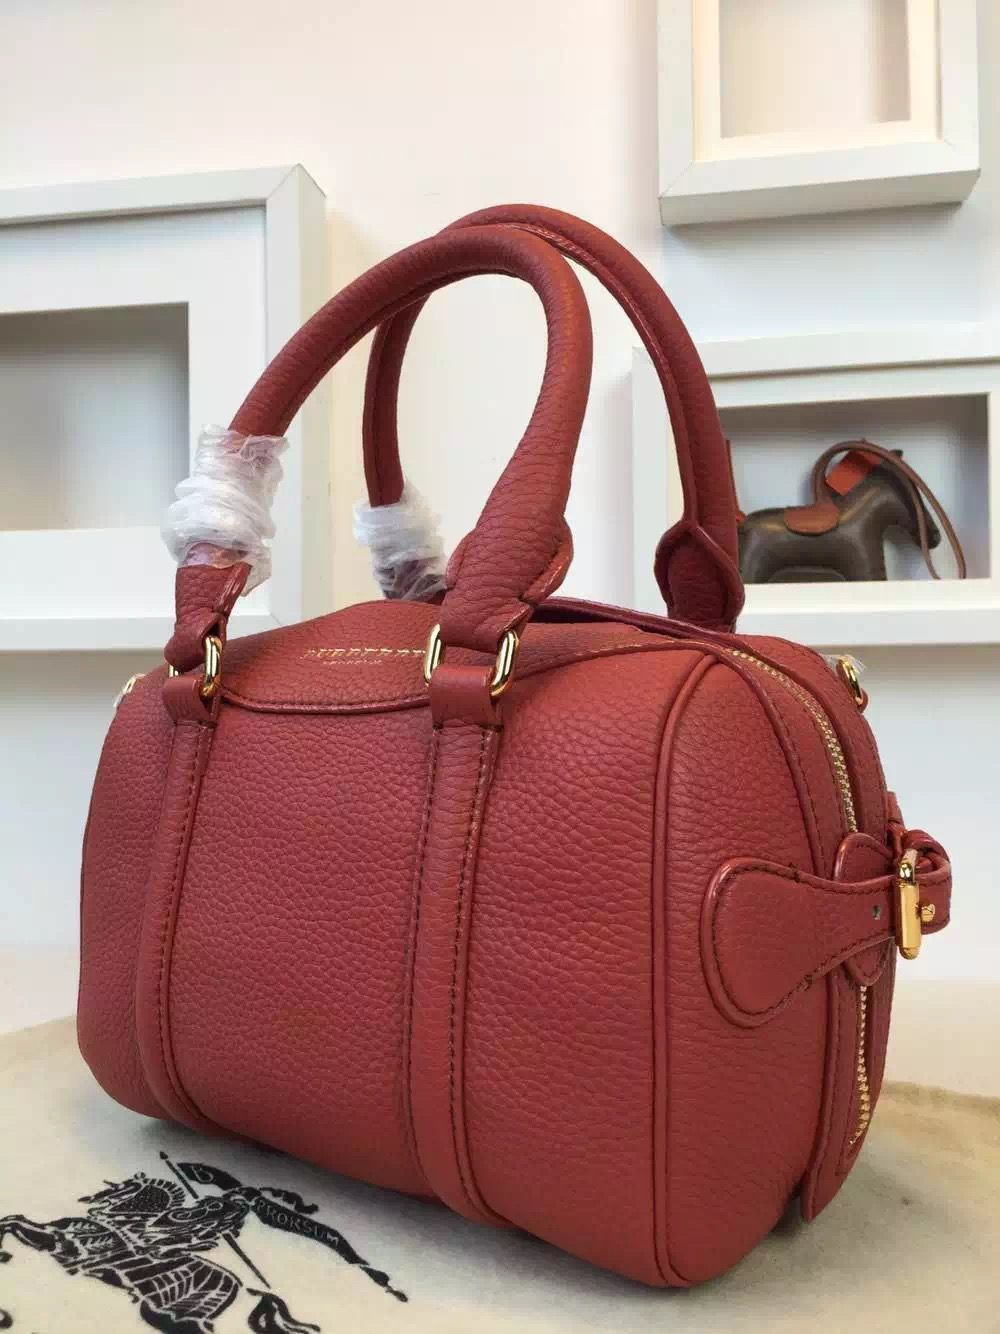 Burberry 39733391 The Mini Bee In Grainy Red Leather 2015  d8b6e21447128